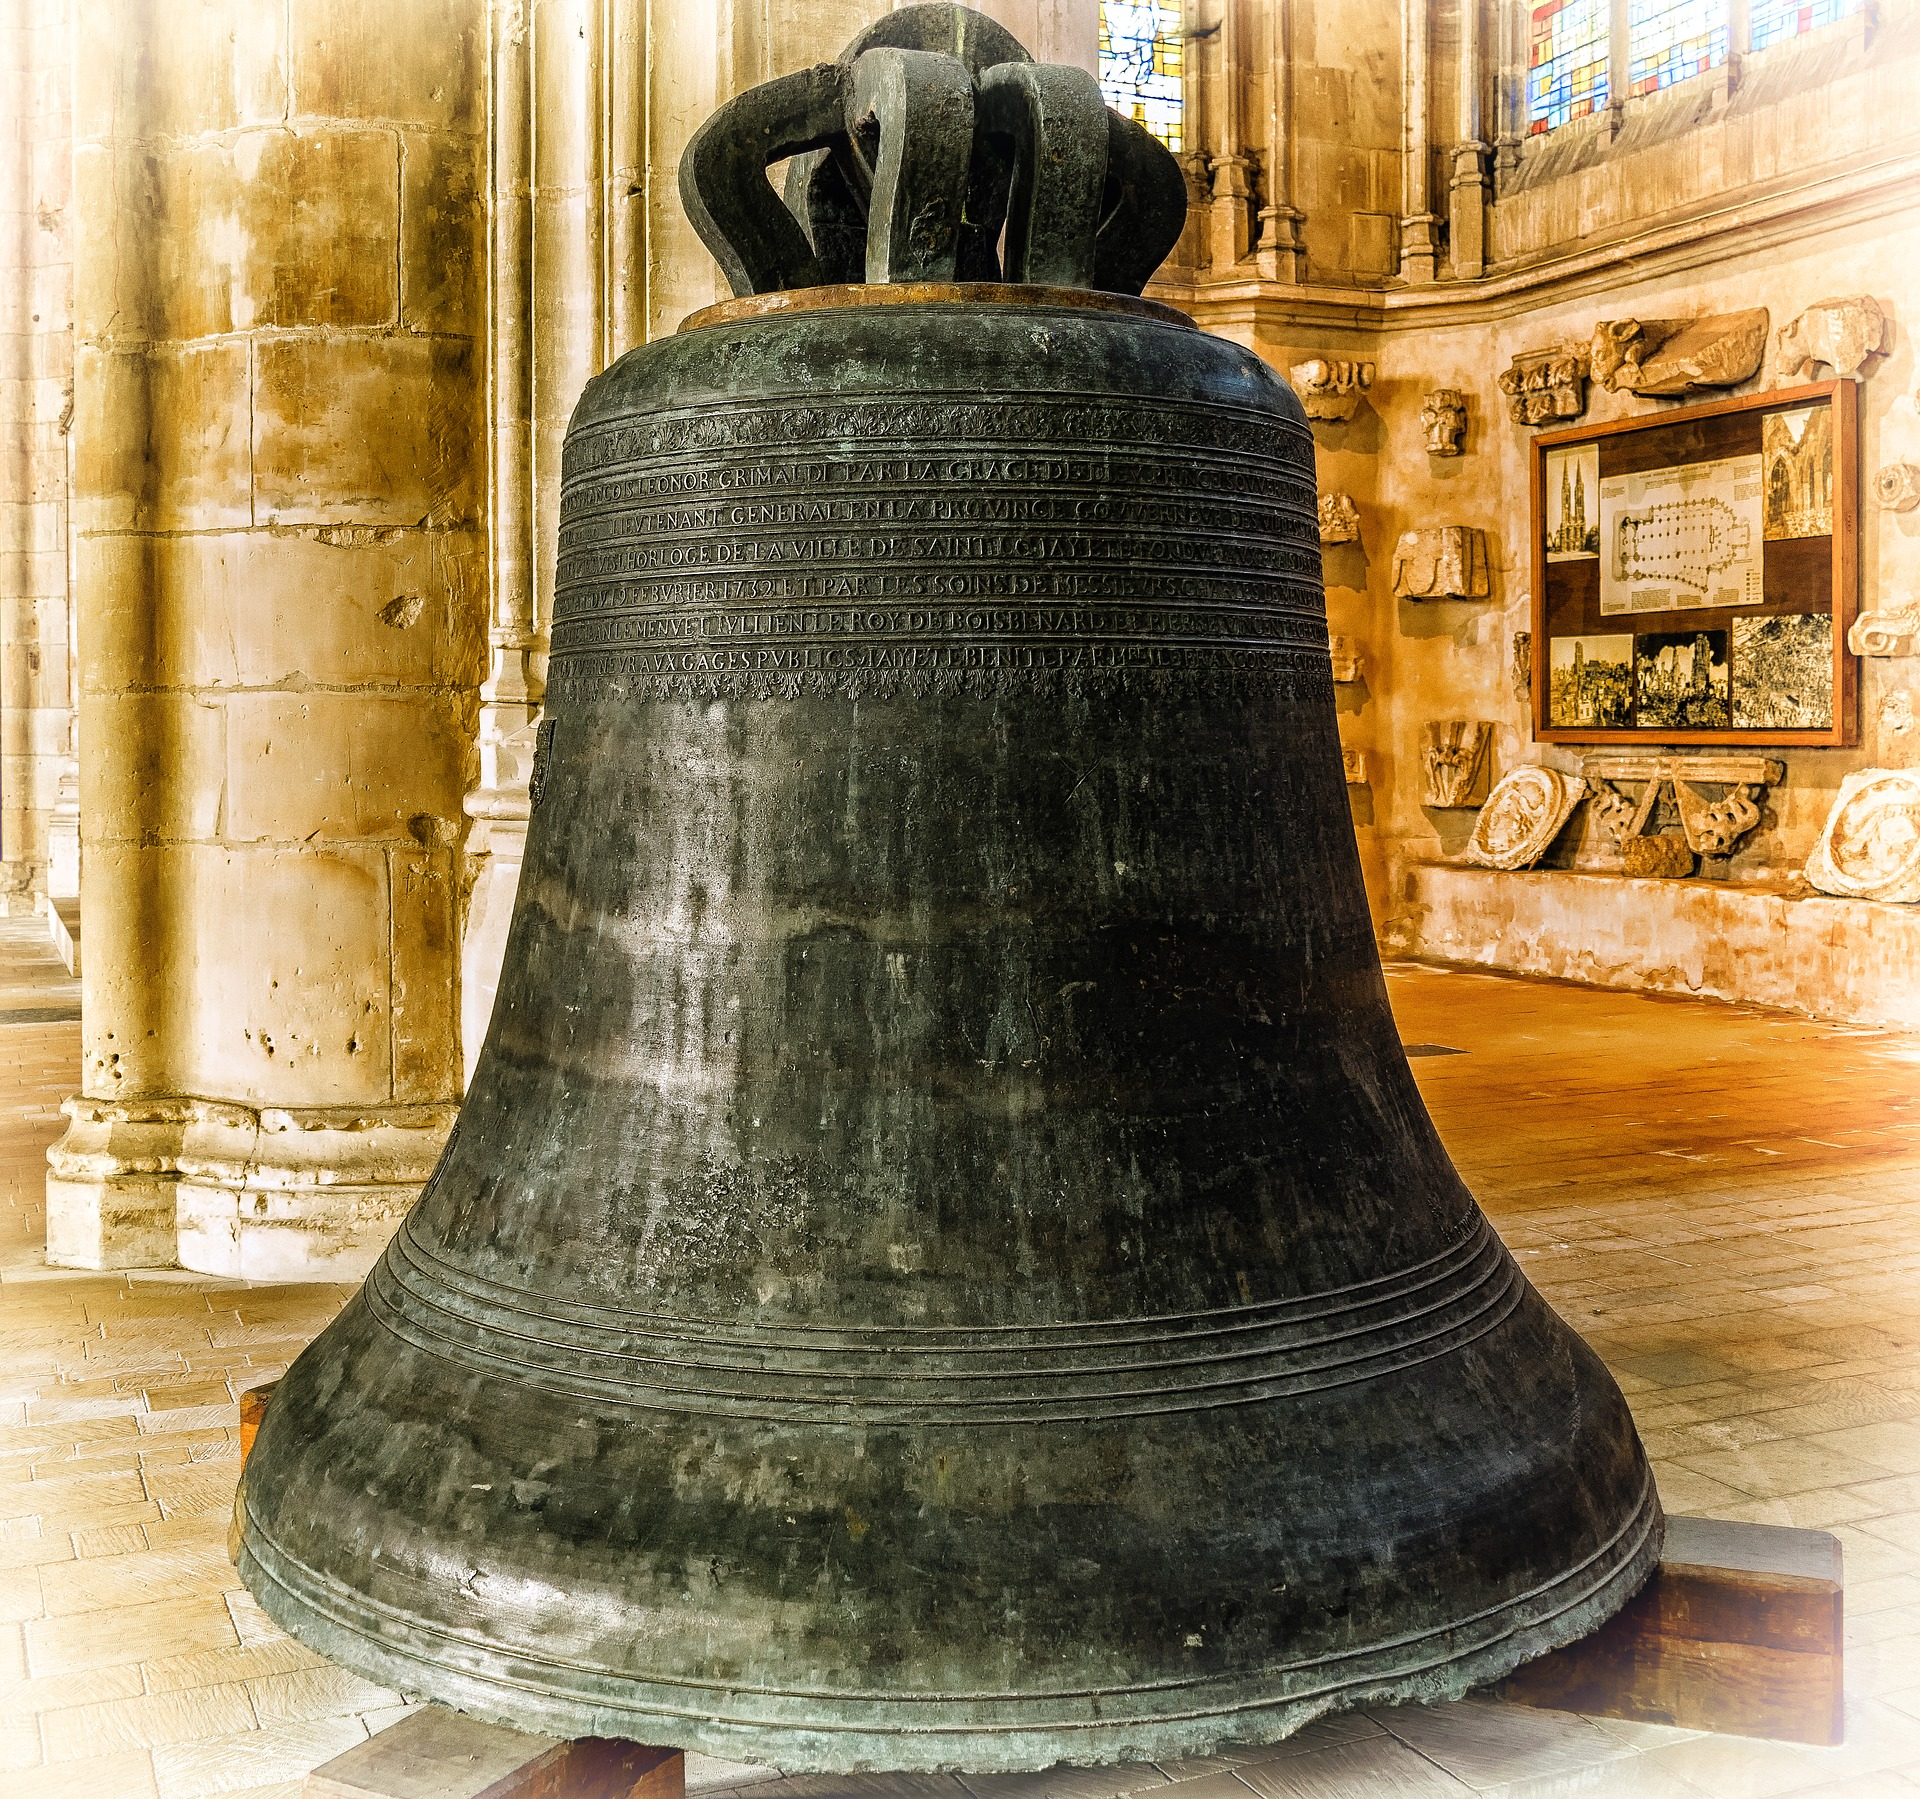 Bell in the church photo